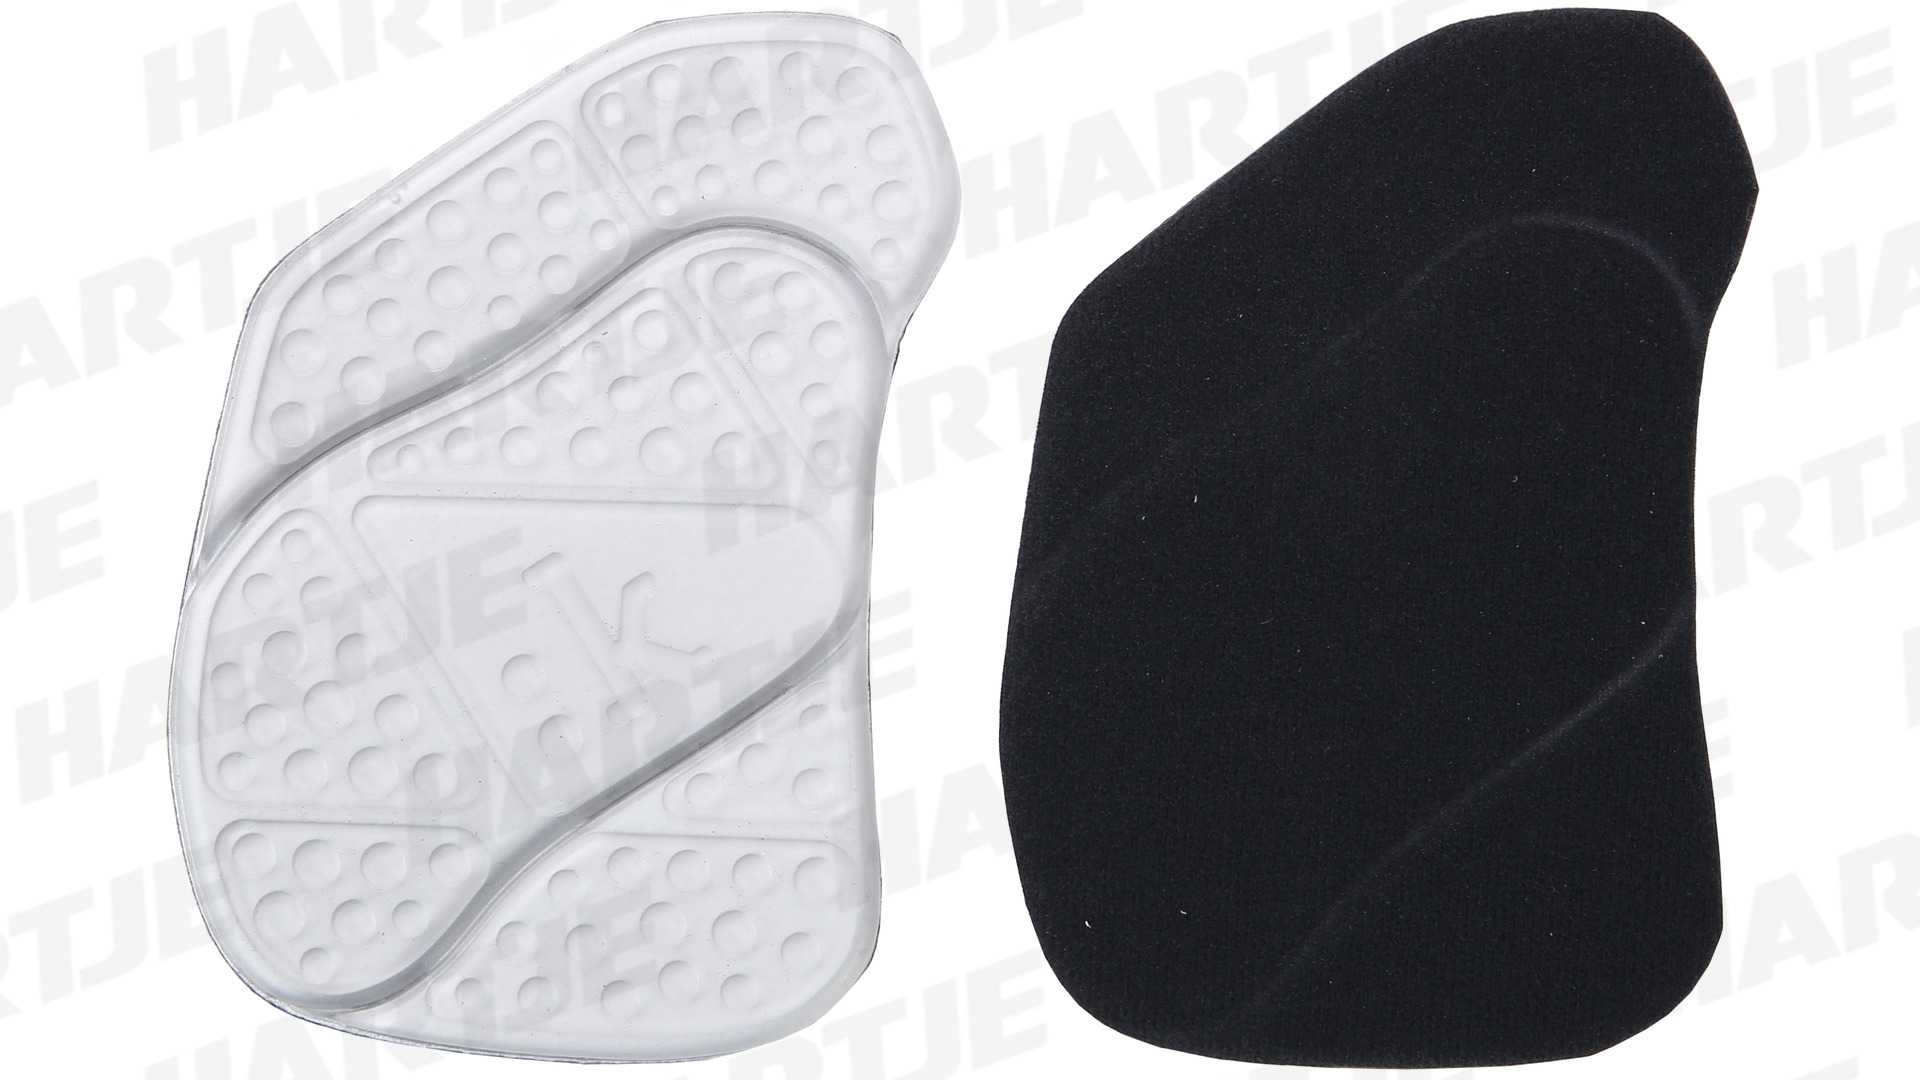 NEW Fizik TechNogel Pads for Profile F19//F22 armrest